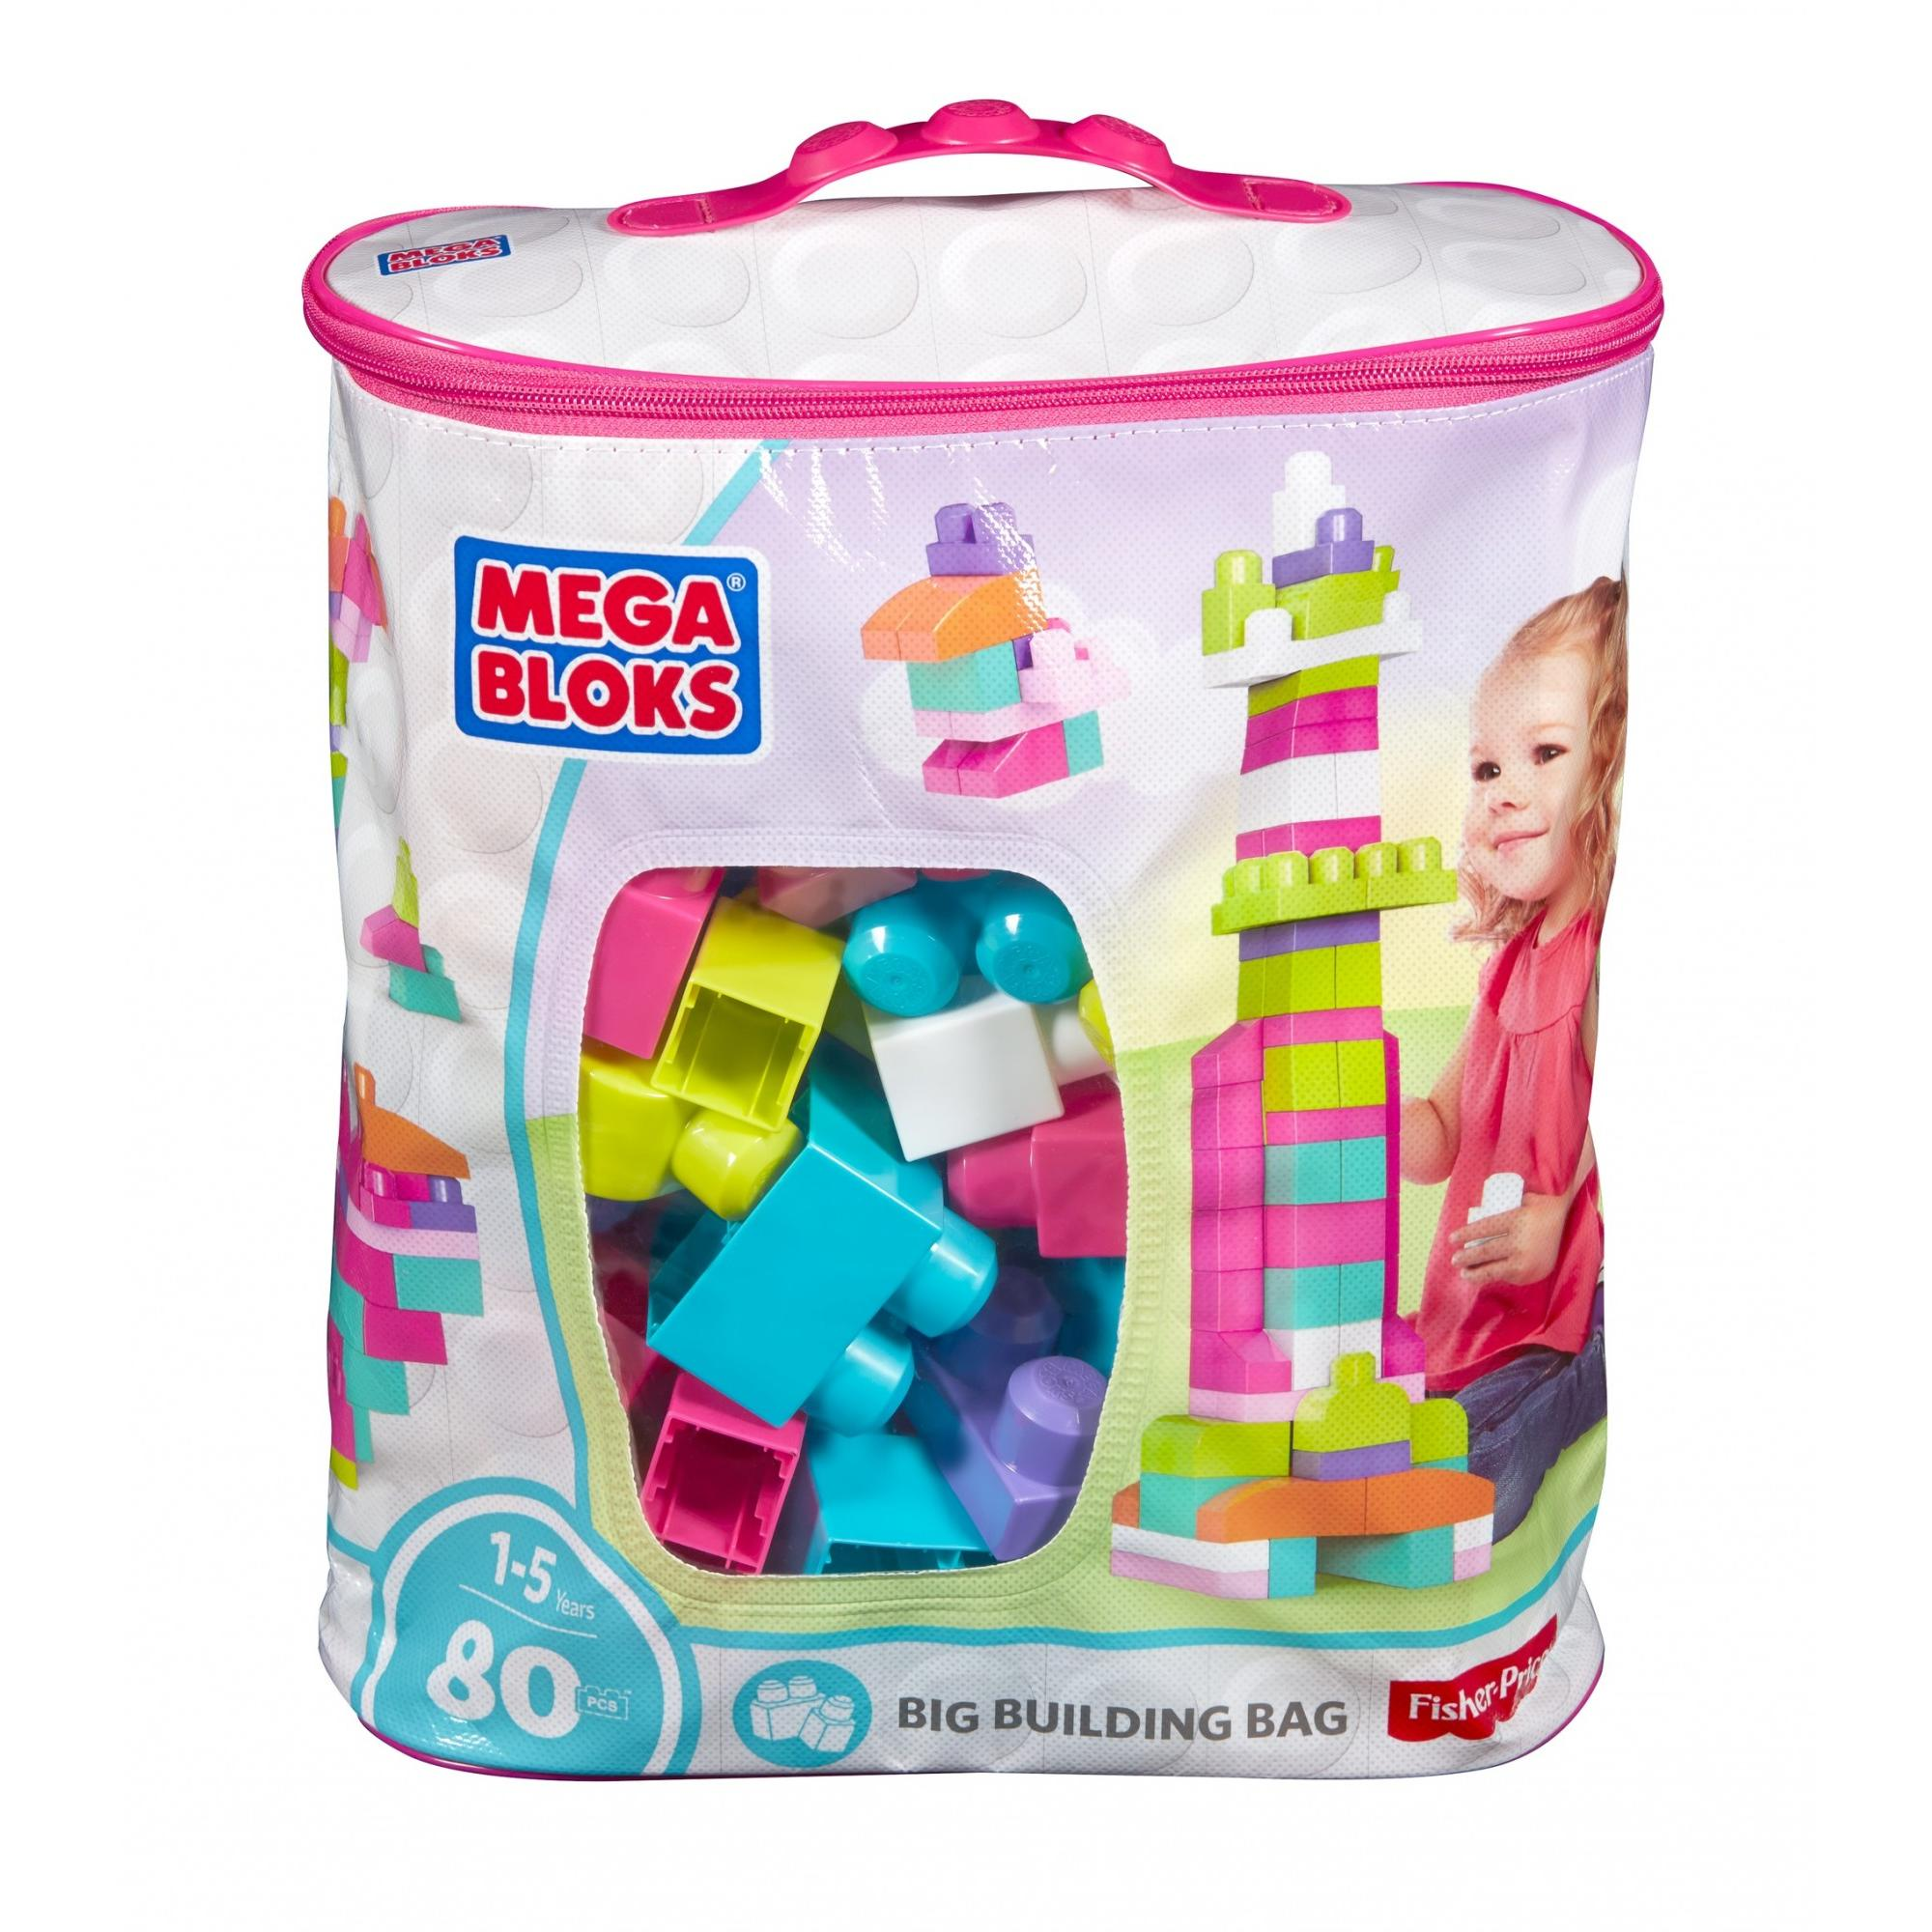 Mega Bloks Big Building Bag 80 Piece Building Set (Pink)